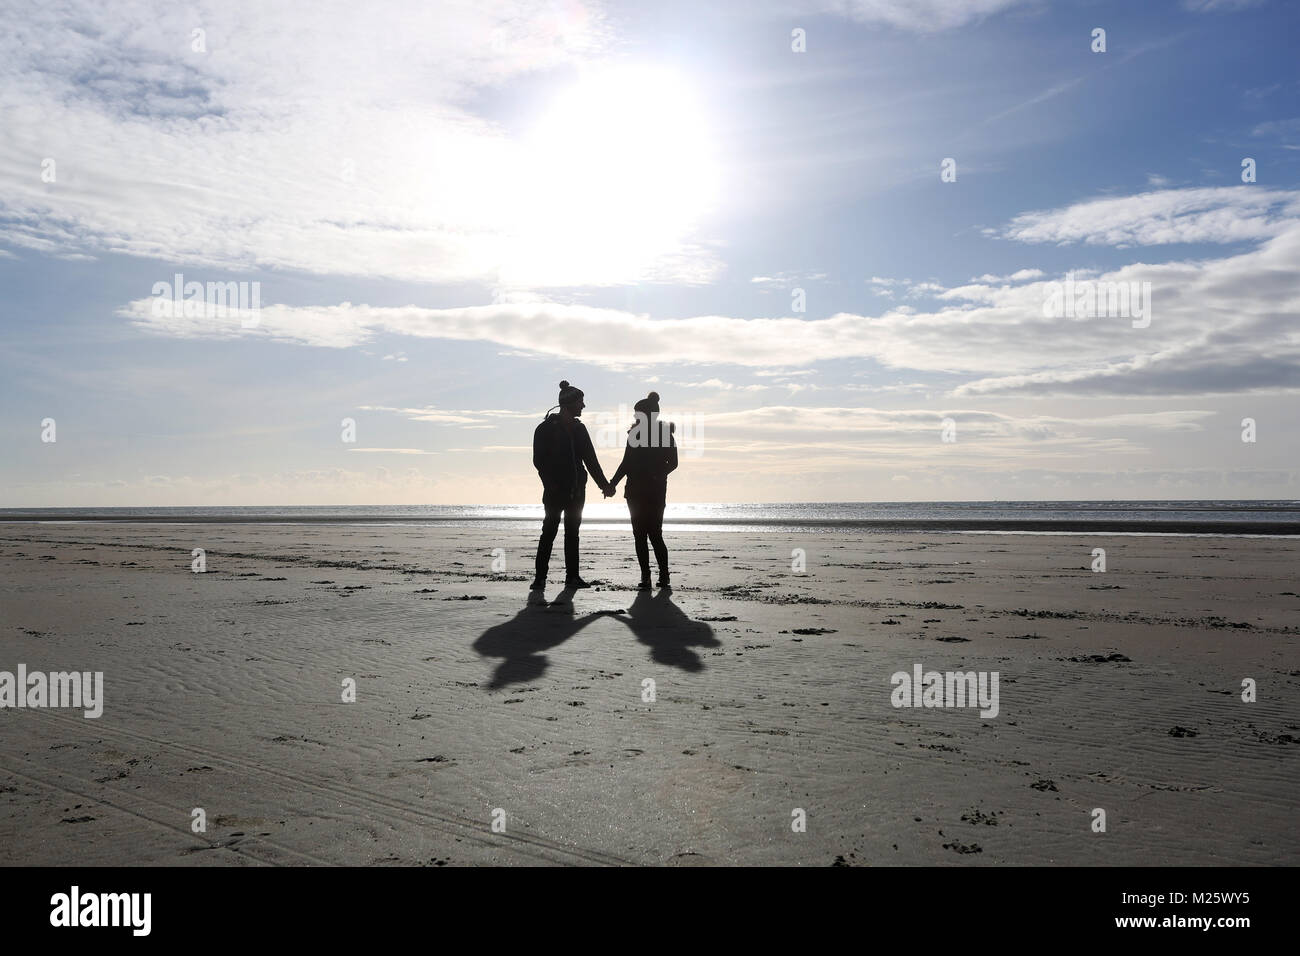 A couple pictured holding hands and walking along the beach in West Wittering, West Sussex, UK. - Stock Image